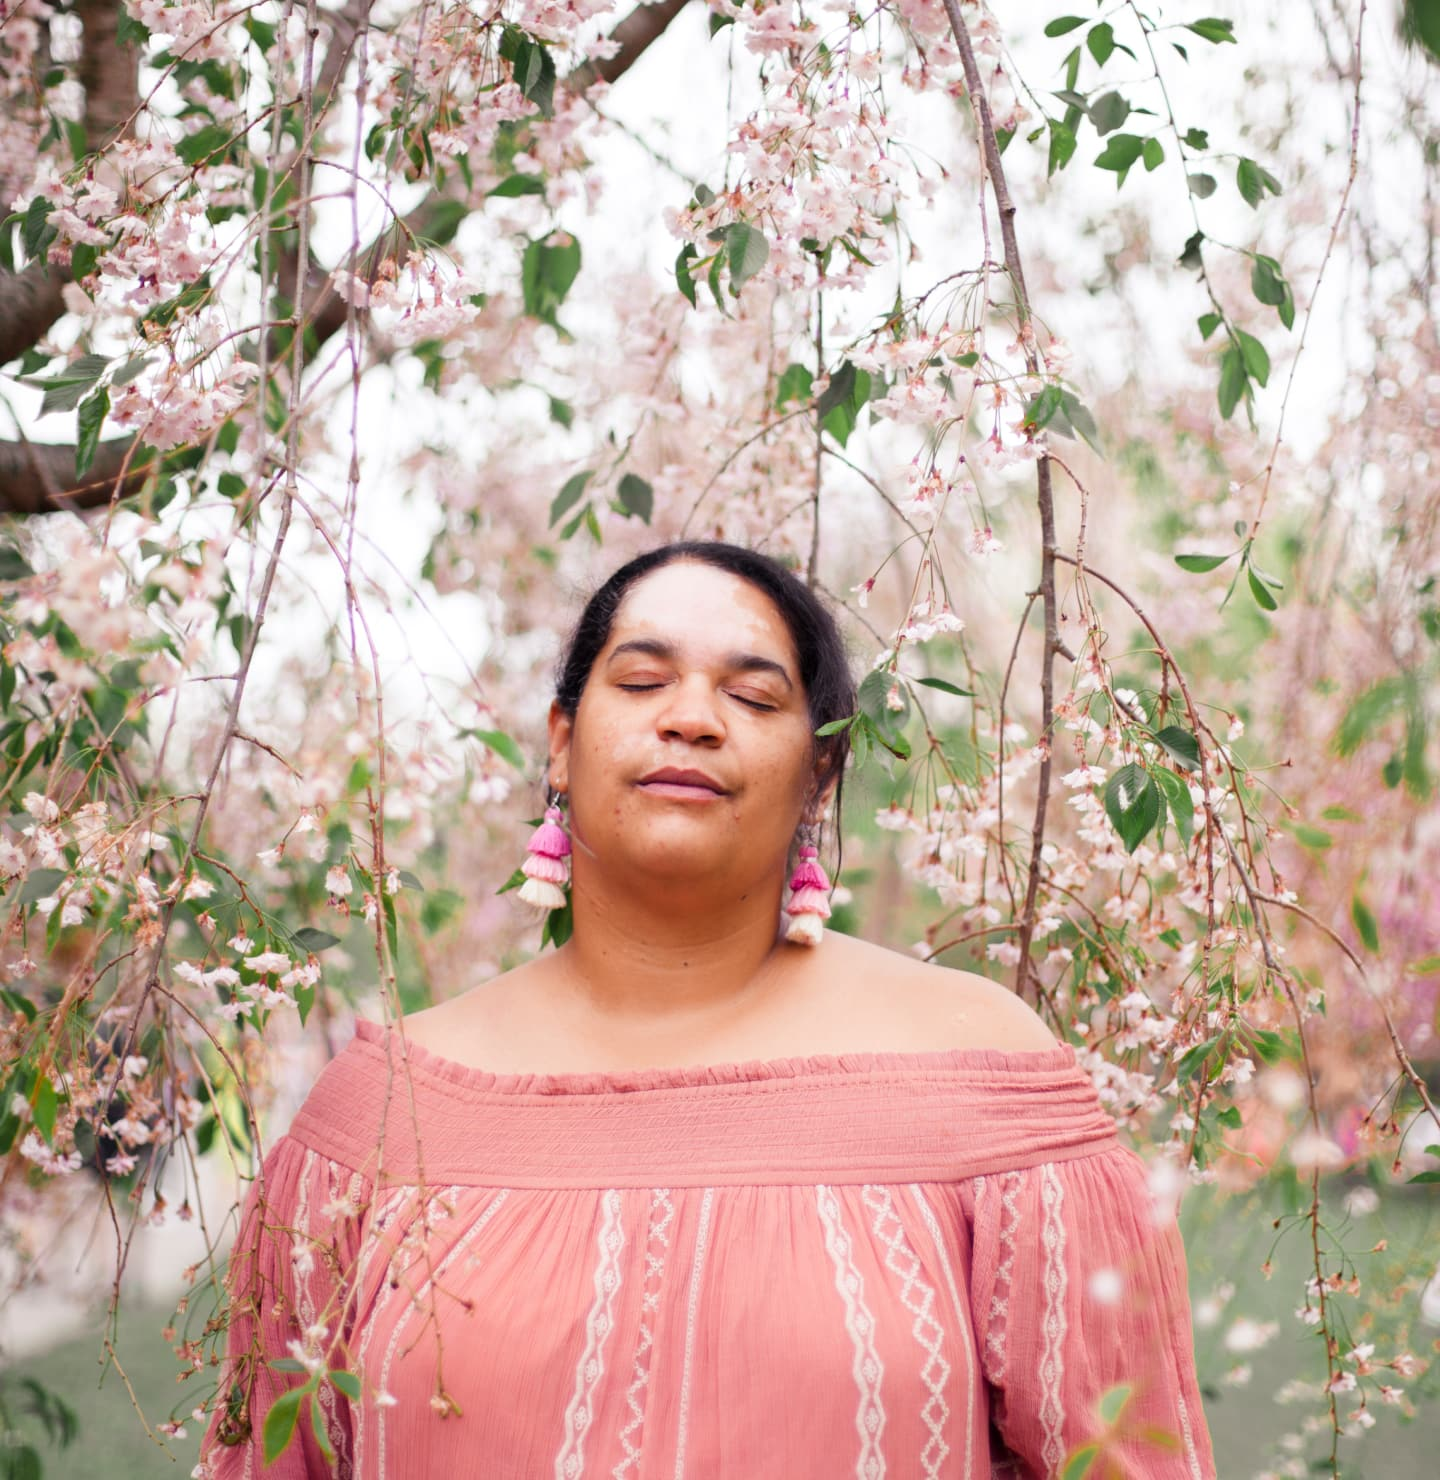 A Black woman in pink stands with her eyes closed under the white and pink blossoms of a tree